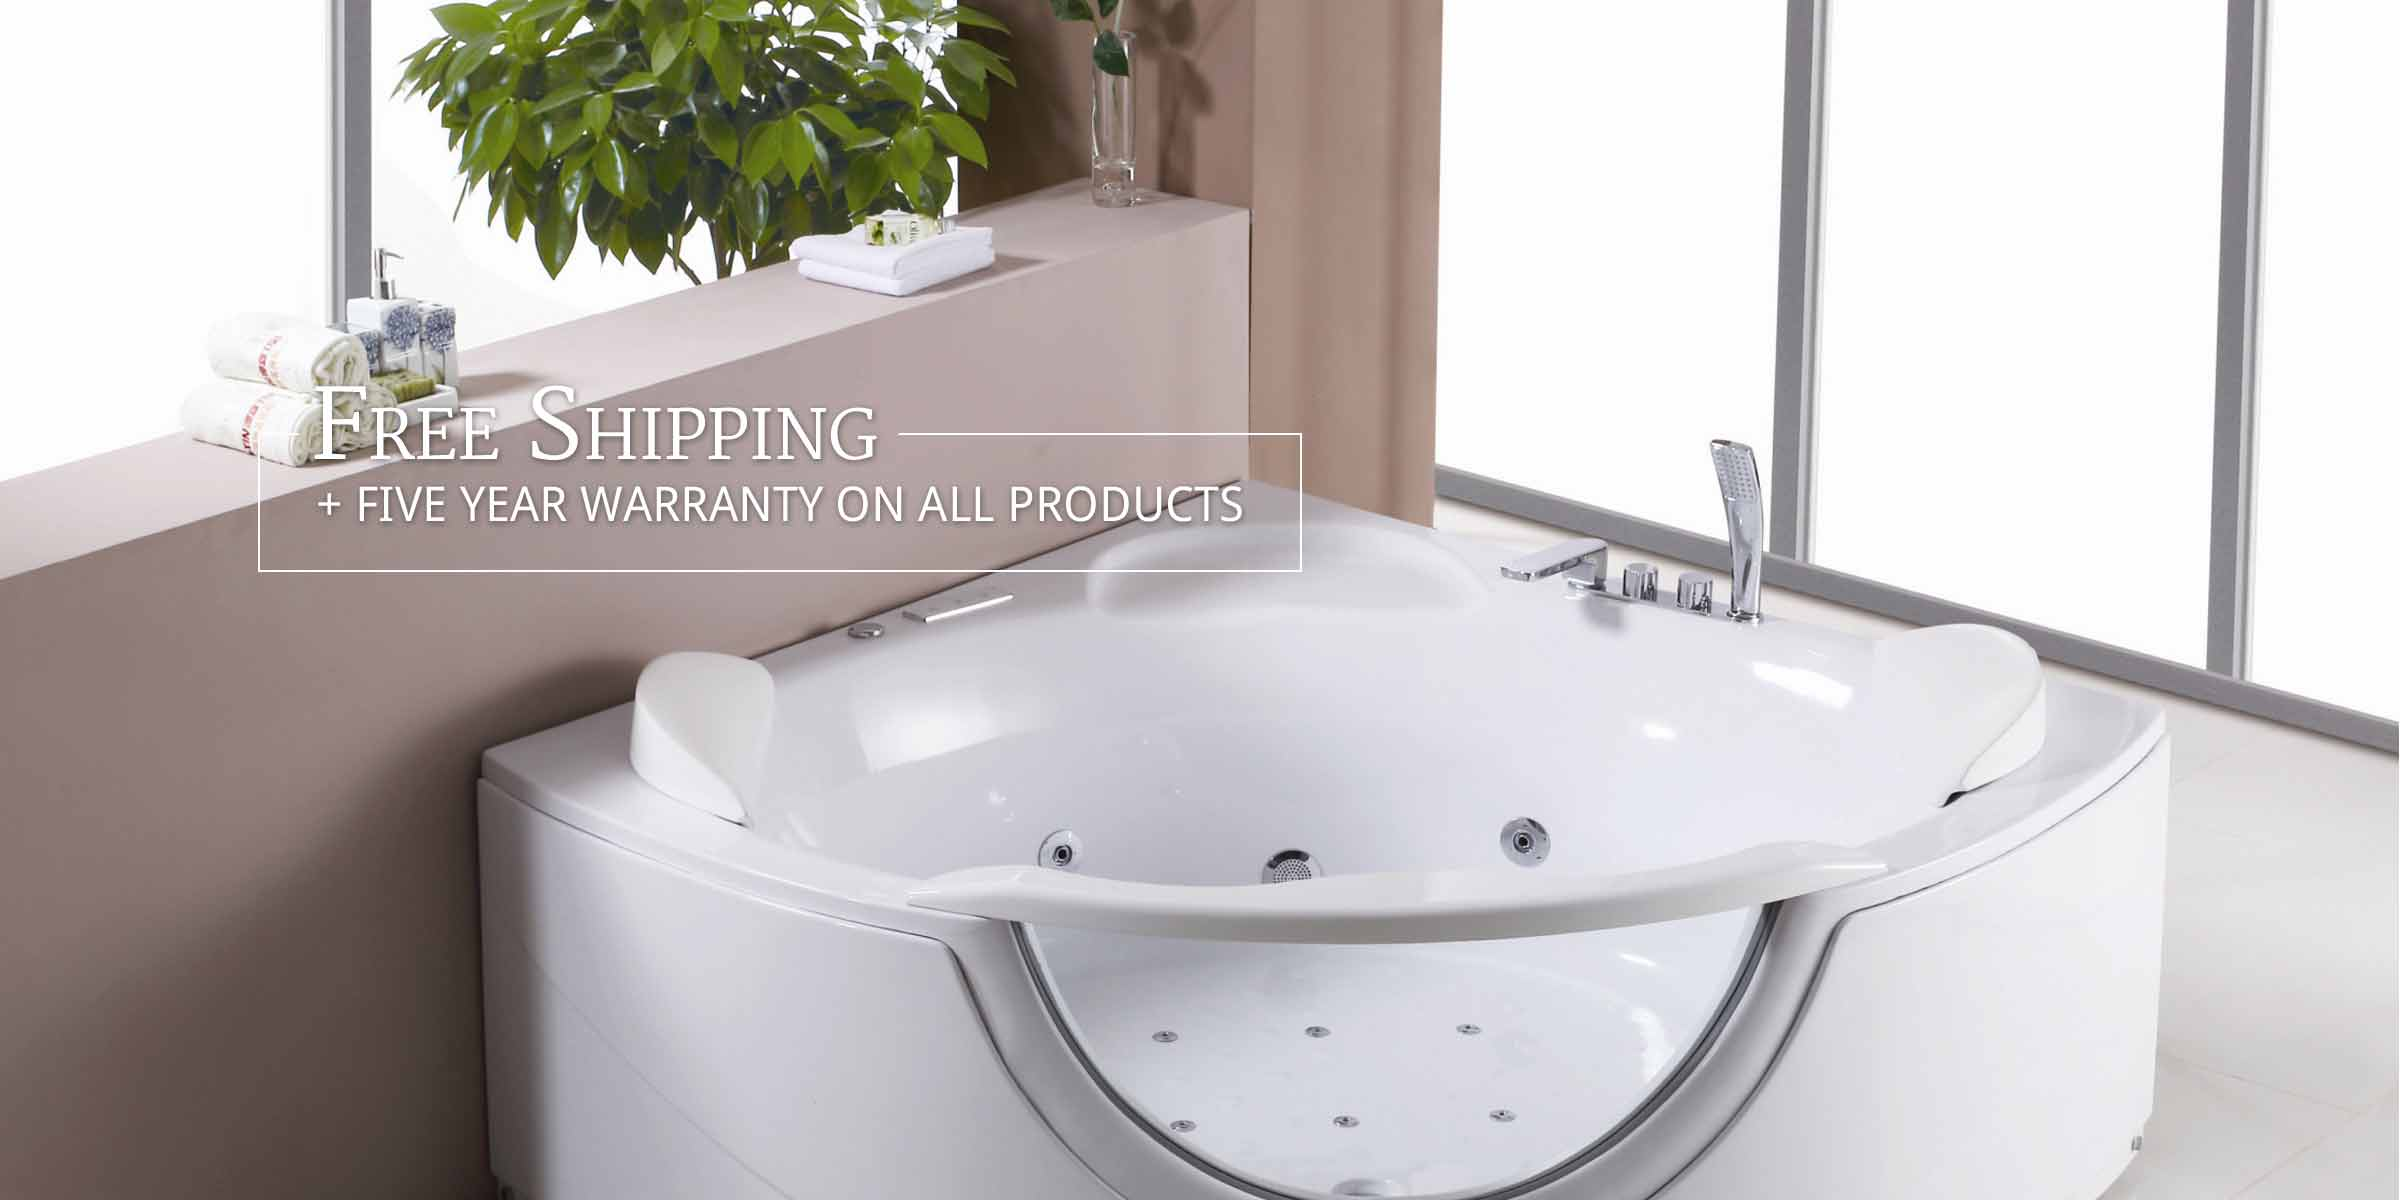 Photo: Jetted Tub in Bathroom. Text: Free Shipping + Five Year Warranty